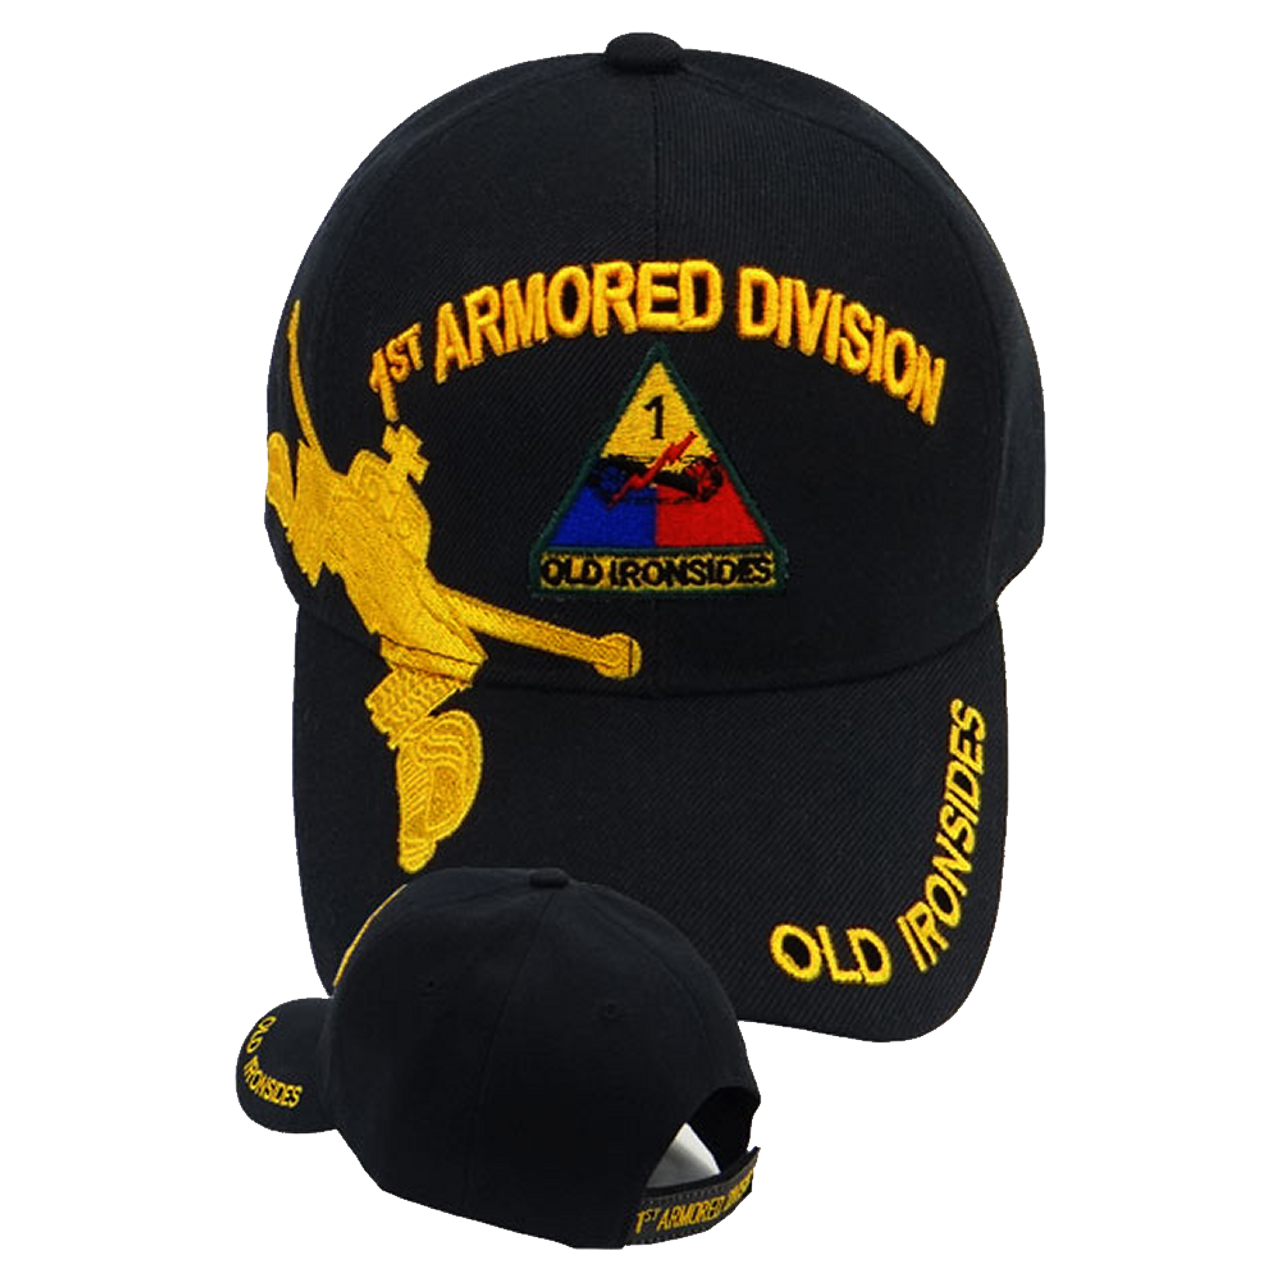 0d8d2272cab 1st Armored Division Caps Old Ironsides - US Military Hats